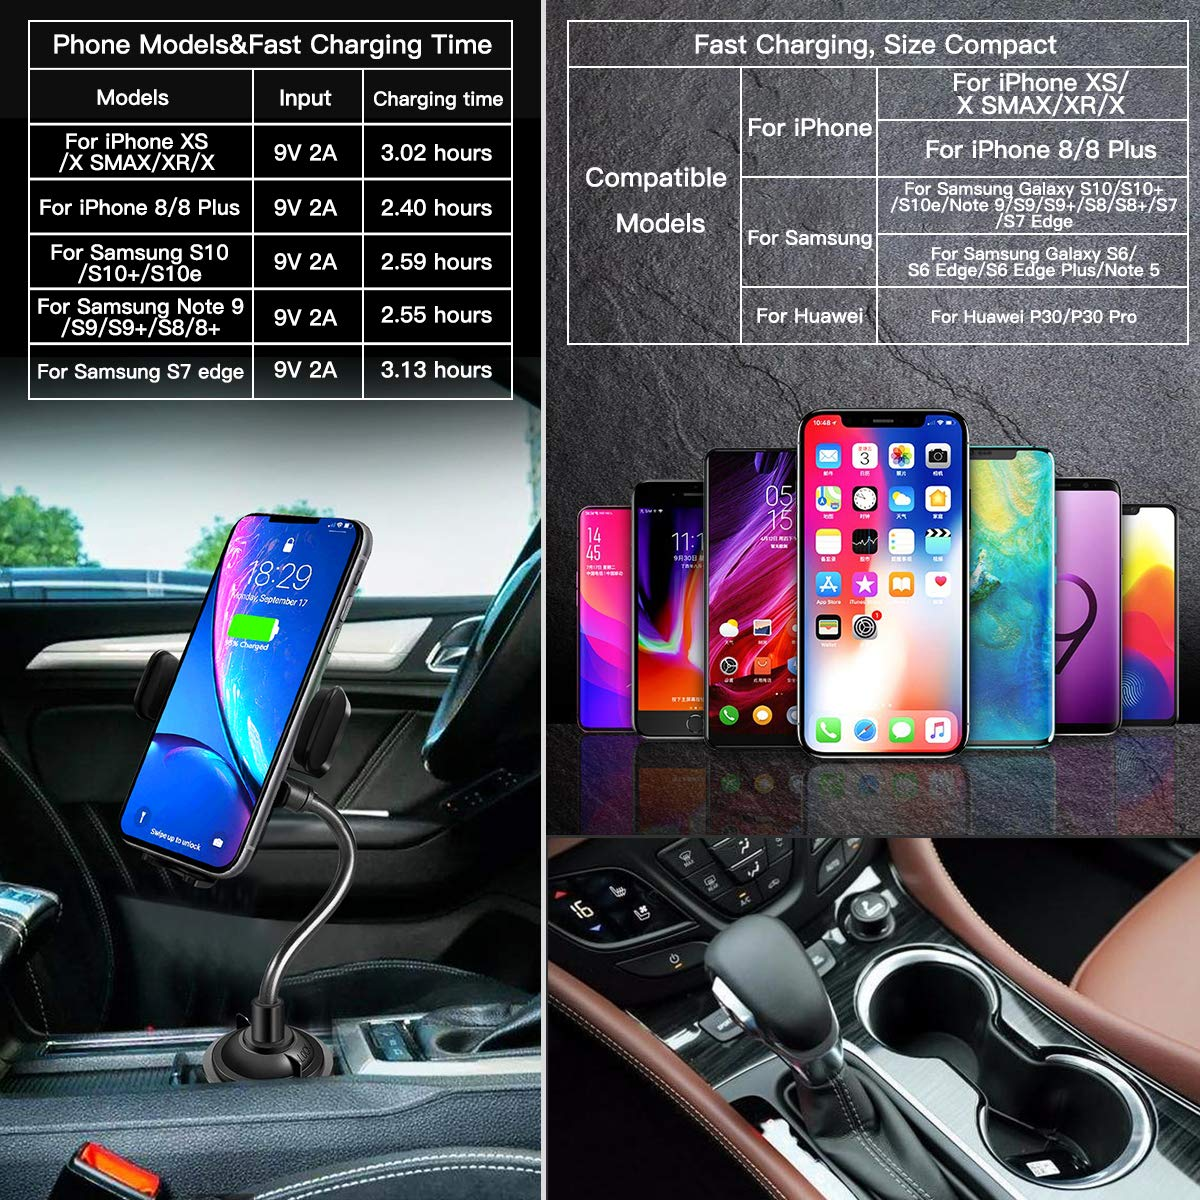 //X//XR//XS Max Qi-Phones Wireless Charger Car Cup Phone Holder, One Hand Operation Car Mount Compatible for Samsung Galaxy S10//S10+ S9//S8 Note 9 and iPhone 11//11Pro Max 10W Qi Fast Wireless Charging